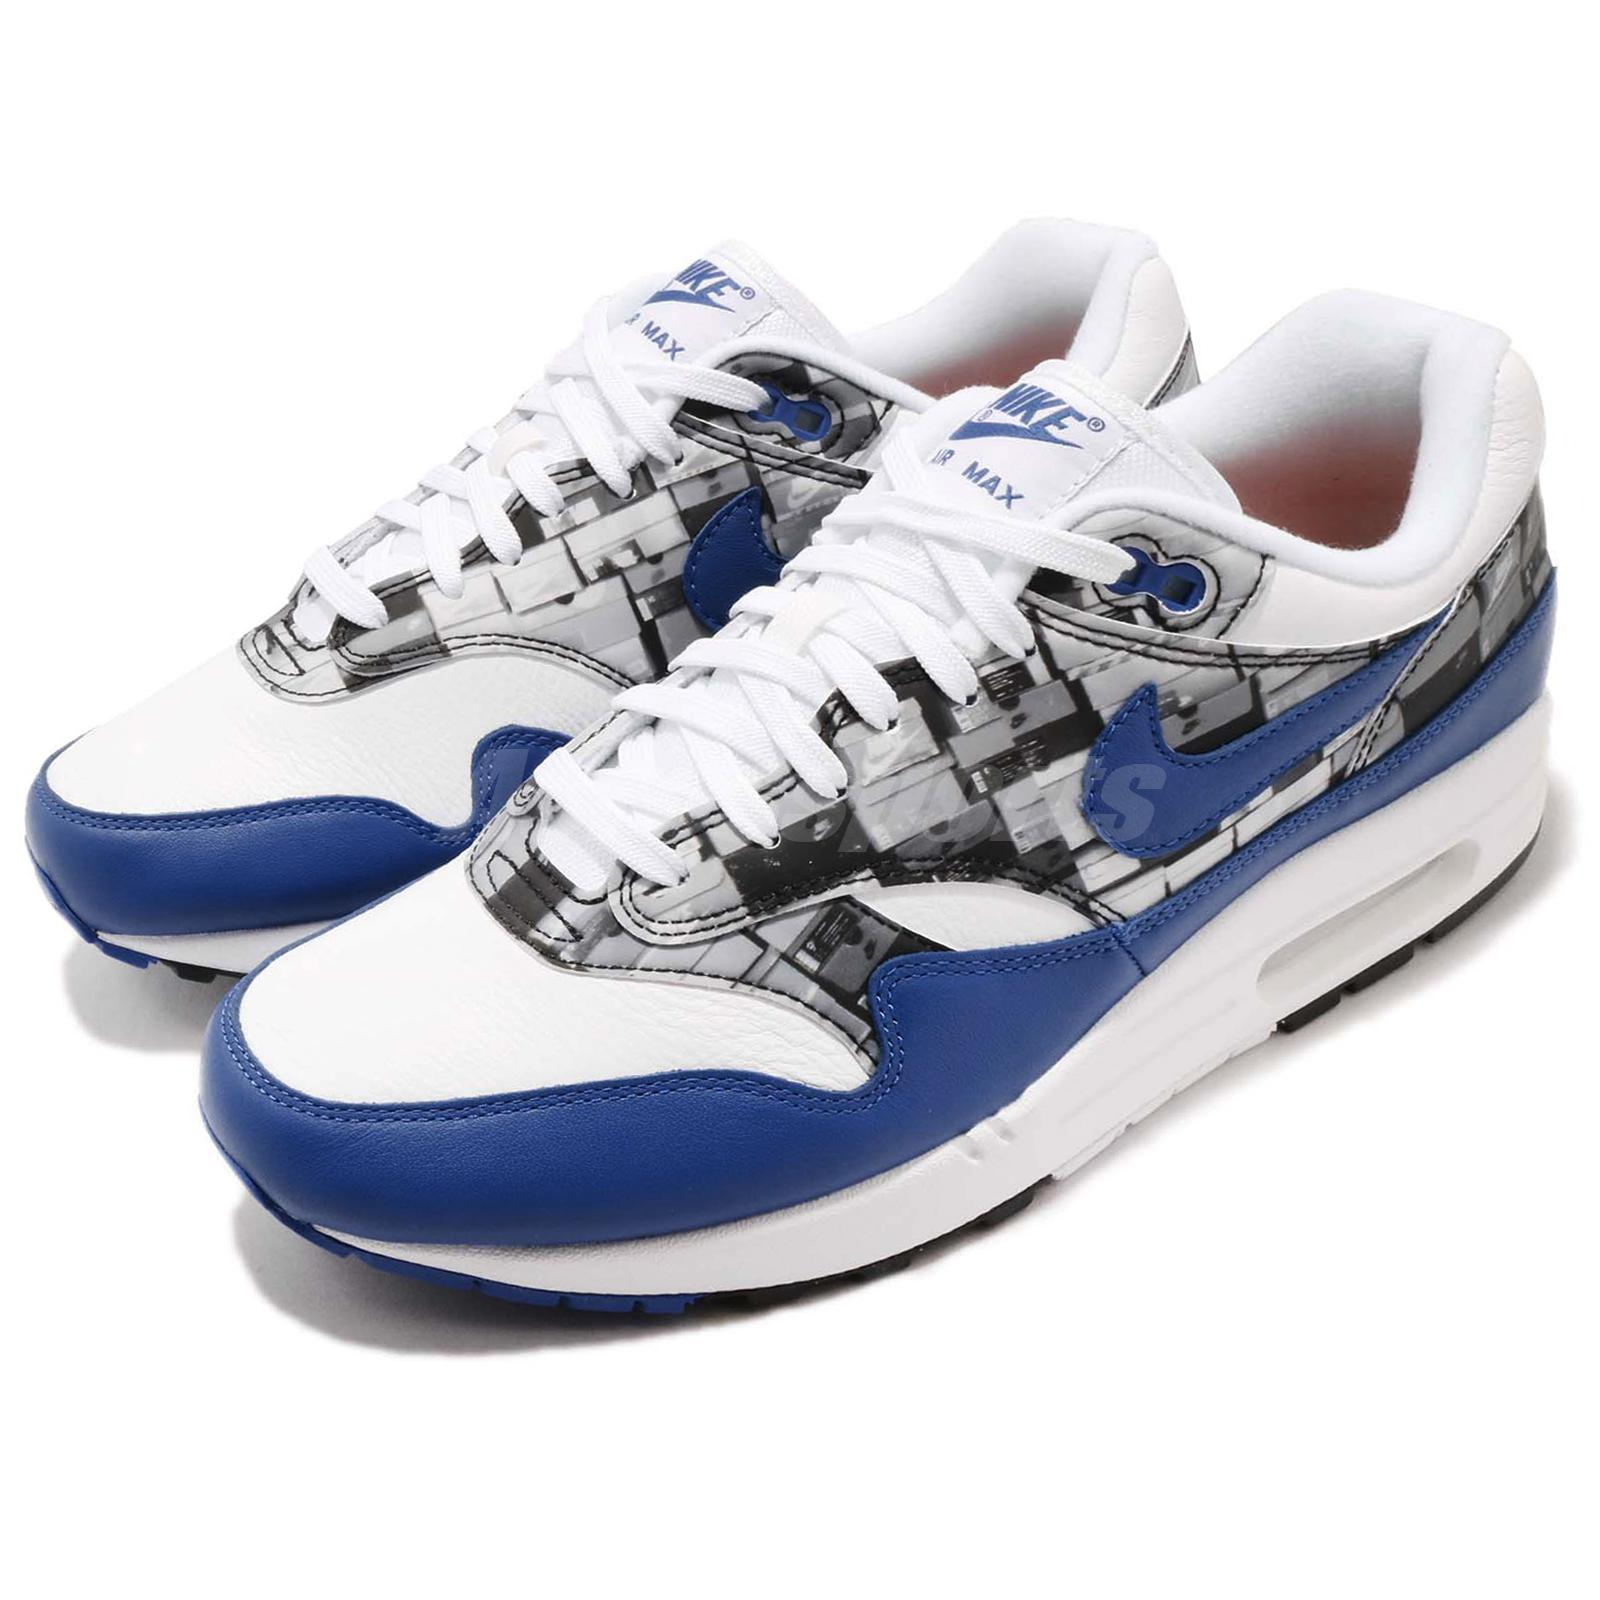 huge selection of f5b70 f539b Details about Atmos X Nike Air Max 1 Print We Love Nike White Blue Royal  Mens Shoes AQ0927-100